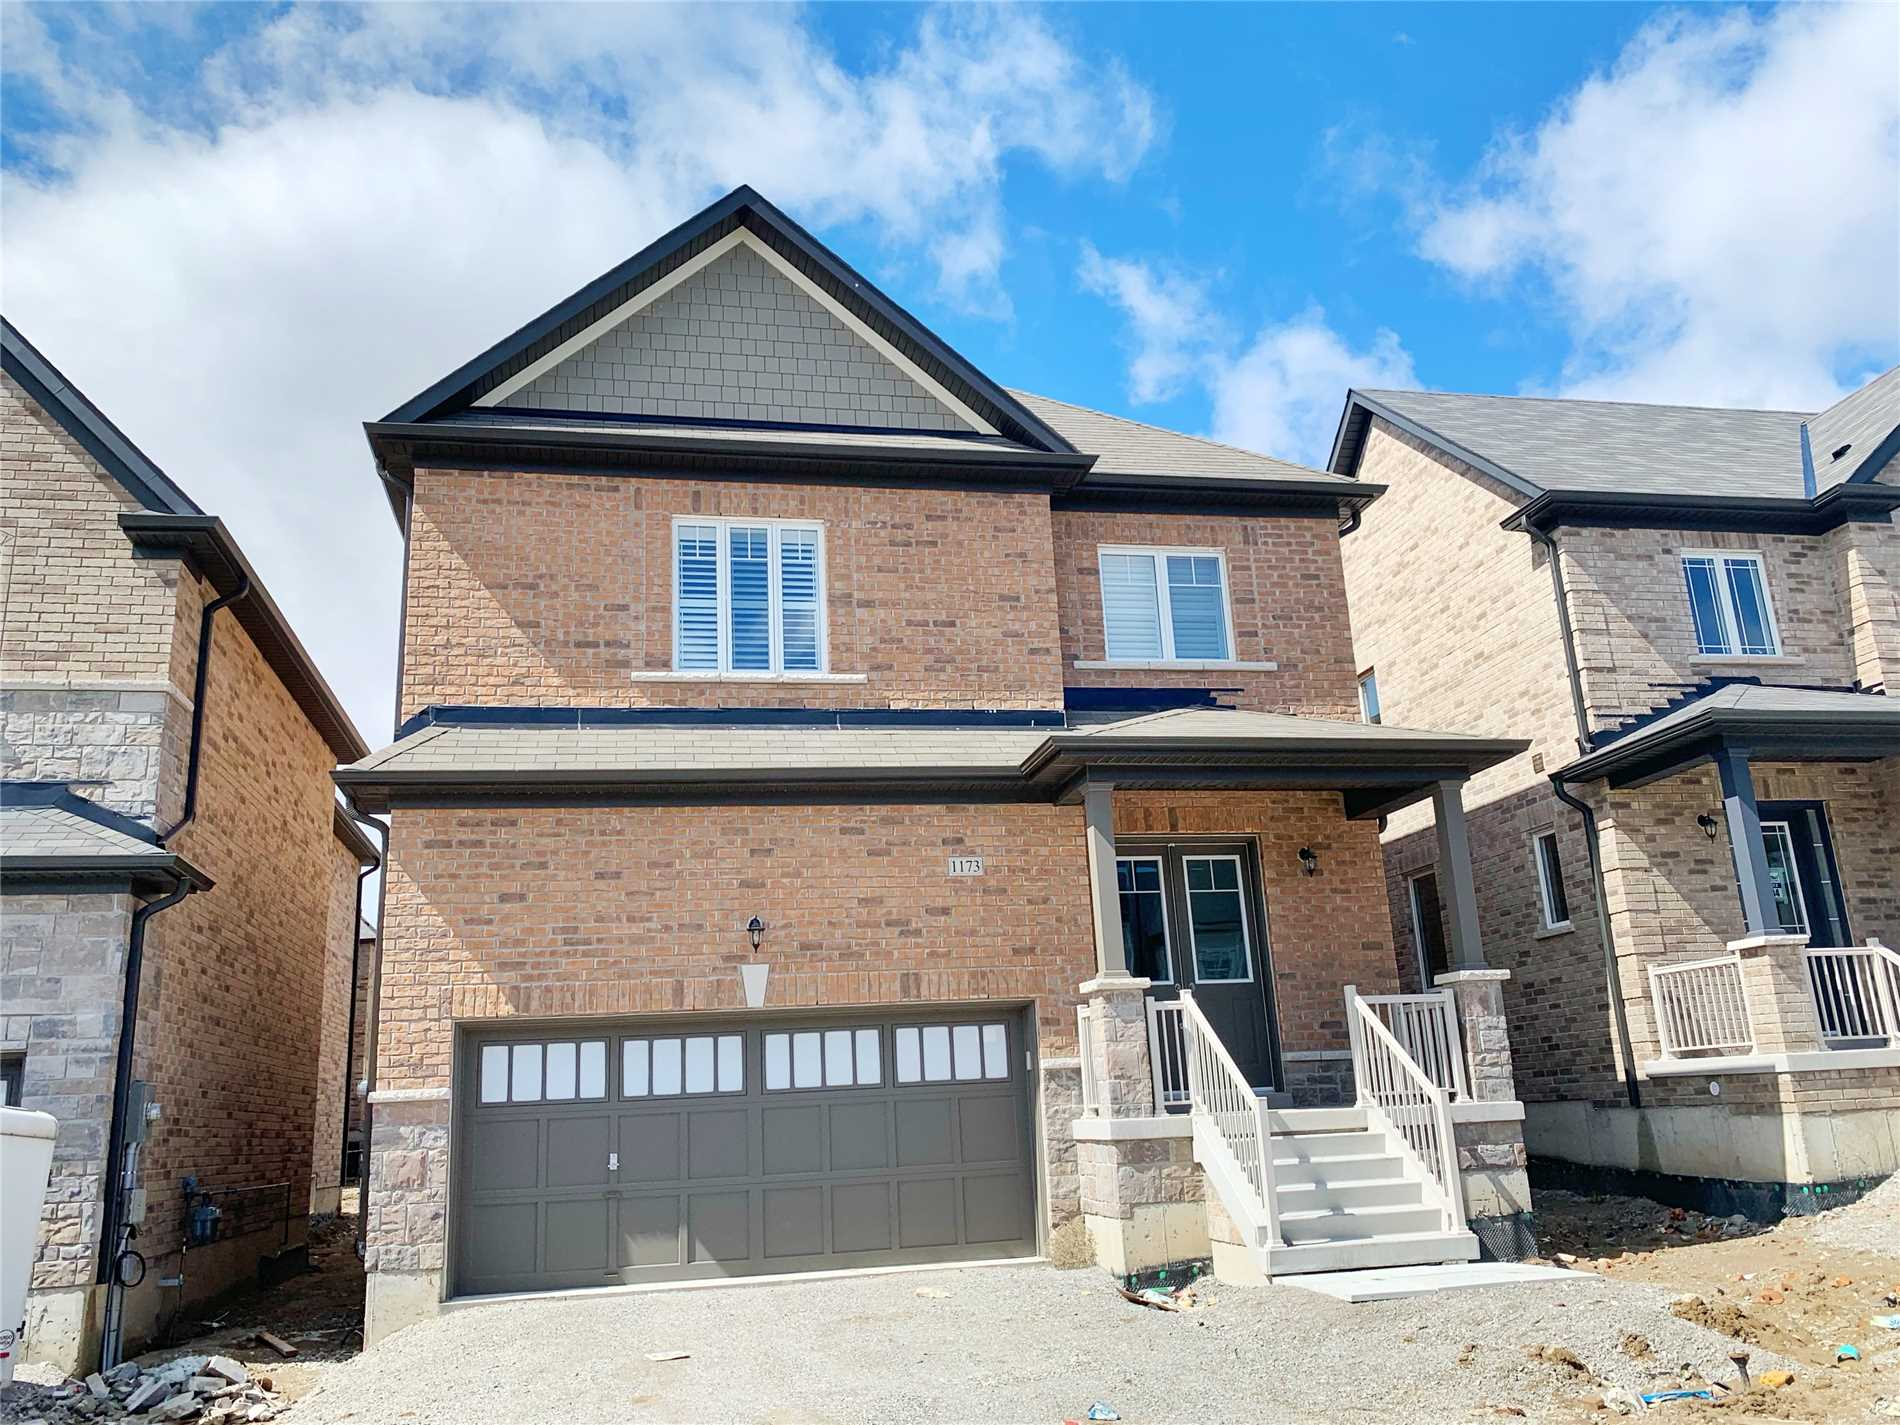 Beautiful Brand New Home For Rent In The Heart Of Innisfil. Main Floor 10 Feet Ceiling, Fire Place, Family Room, Great Room And An Open Concept Floor Plan. This Property Is Located Close To Beaches, Marina, Golf Courses, Parks, Tangiers Outlet Mall, Hwy 400, Future Go Station And Much More. Brand New Upgraded Appliances: Fridge, Dishwasher, Gas Stove, Washer & Dryer. Wooden Flooring Through Out The House.